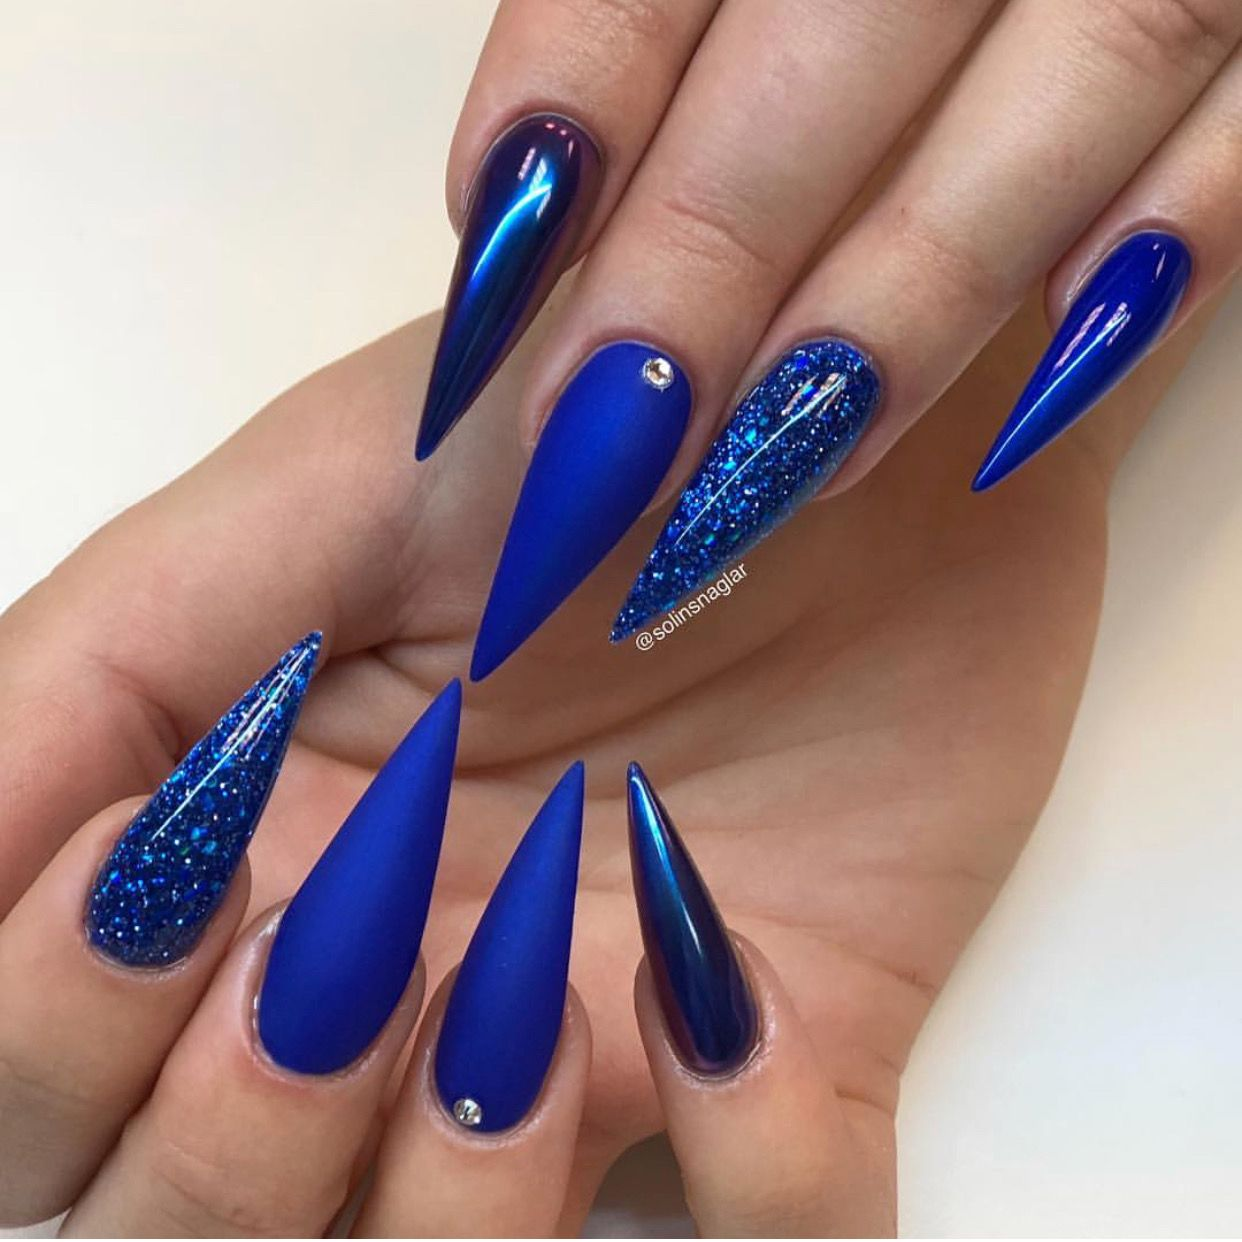 Luv This Blue The Finish The Shape Length Everything Stiletto Nails Designs Acrylic Nails Stiletto Blue Stiletto Nails